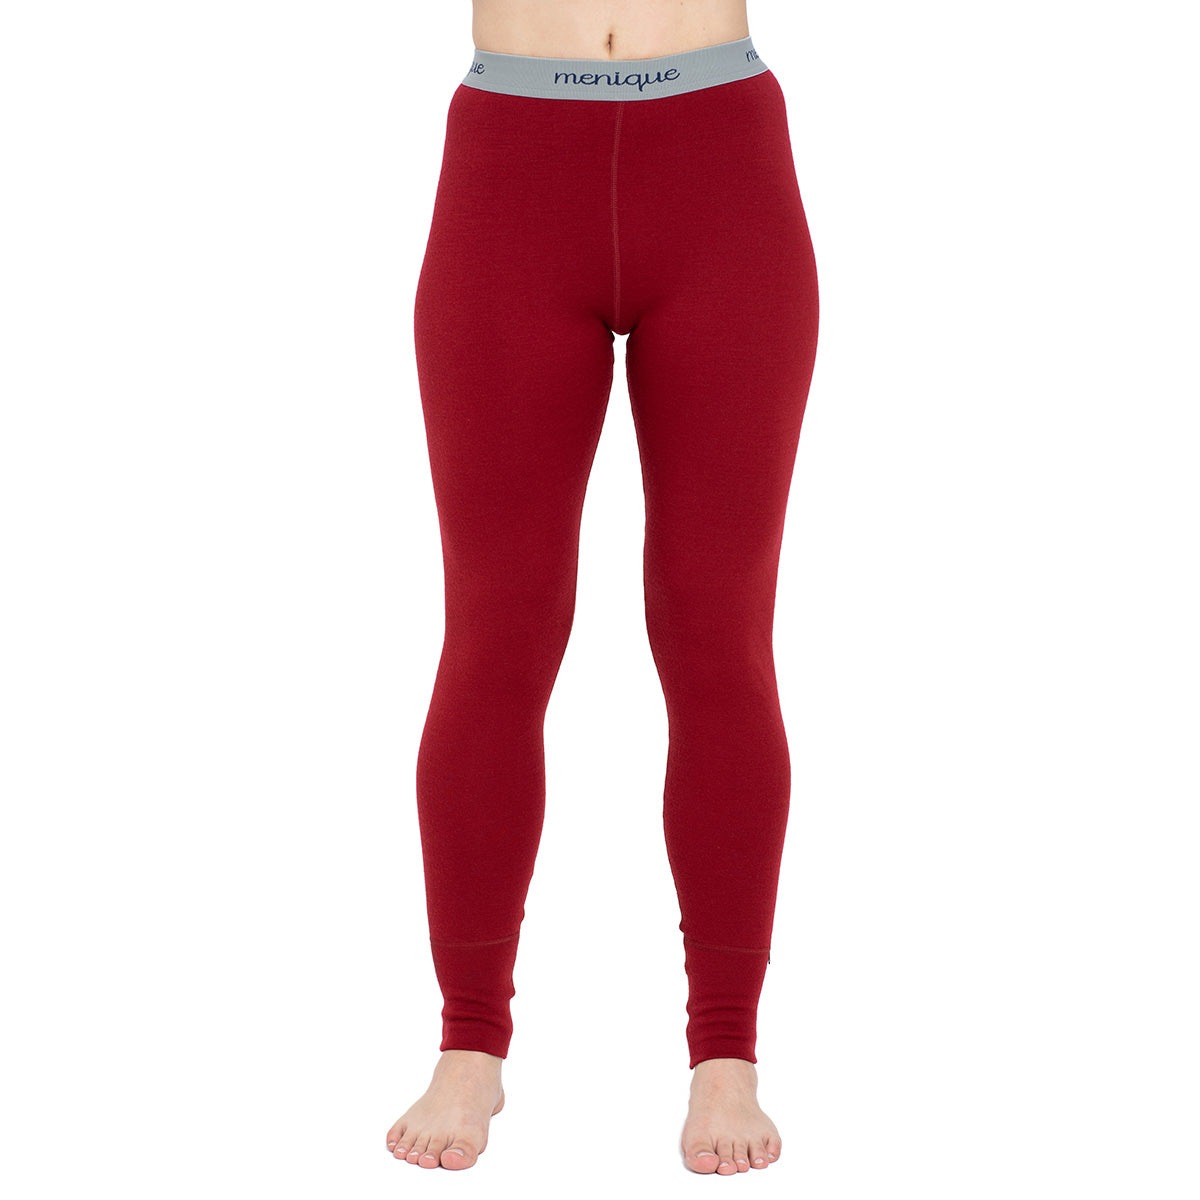 menique Women's Merino 250 Pants RB Royal Cherry Color